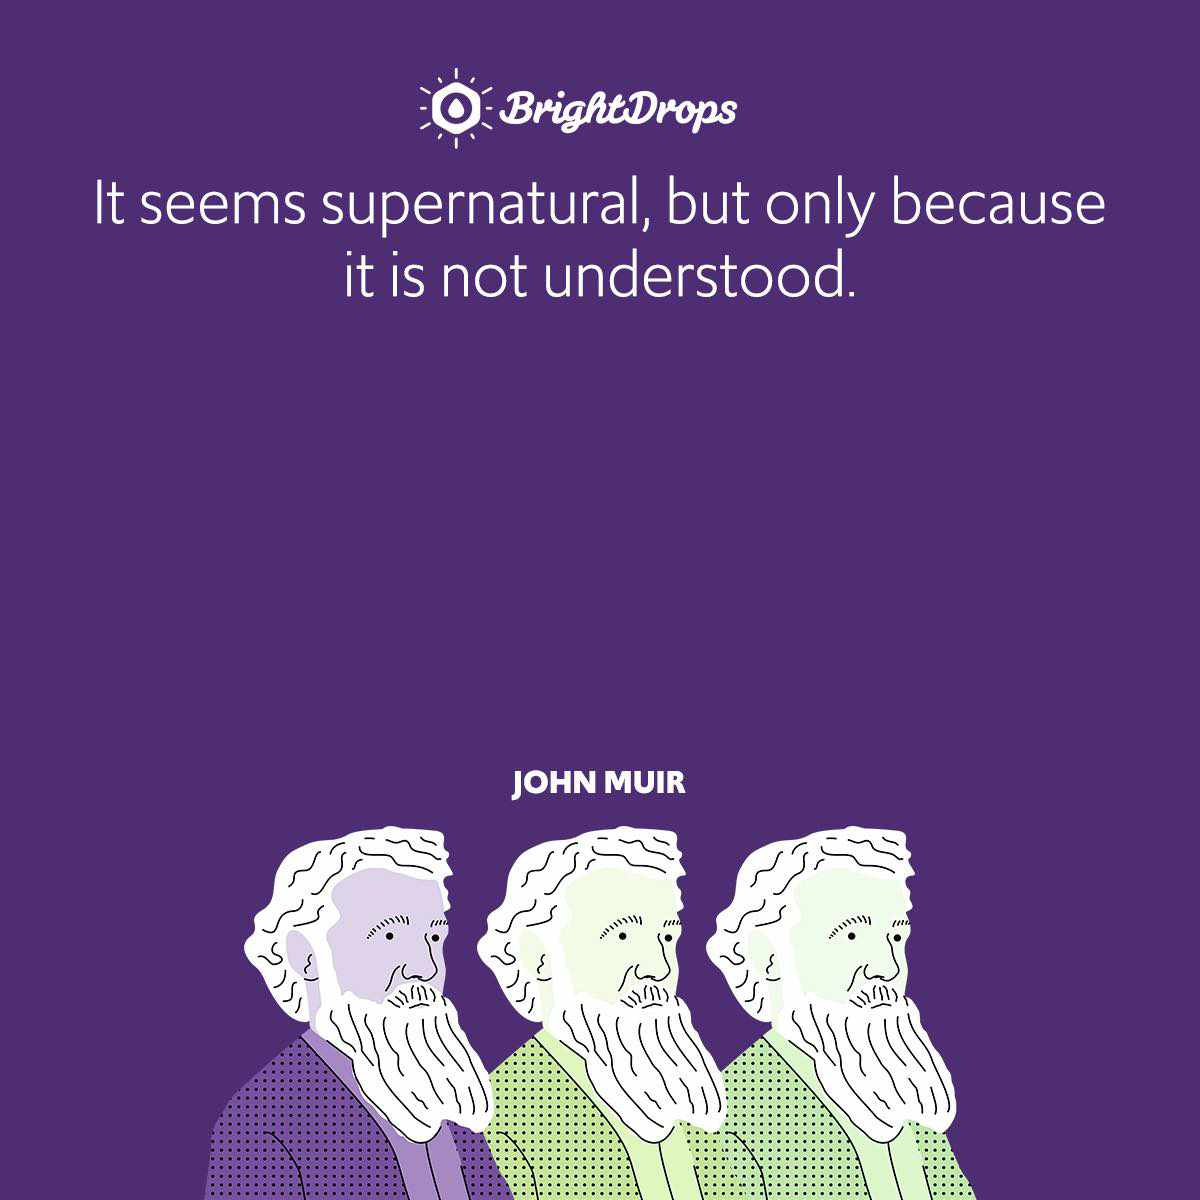 It seems supernatural, but only because it is not understood.